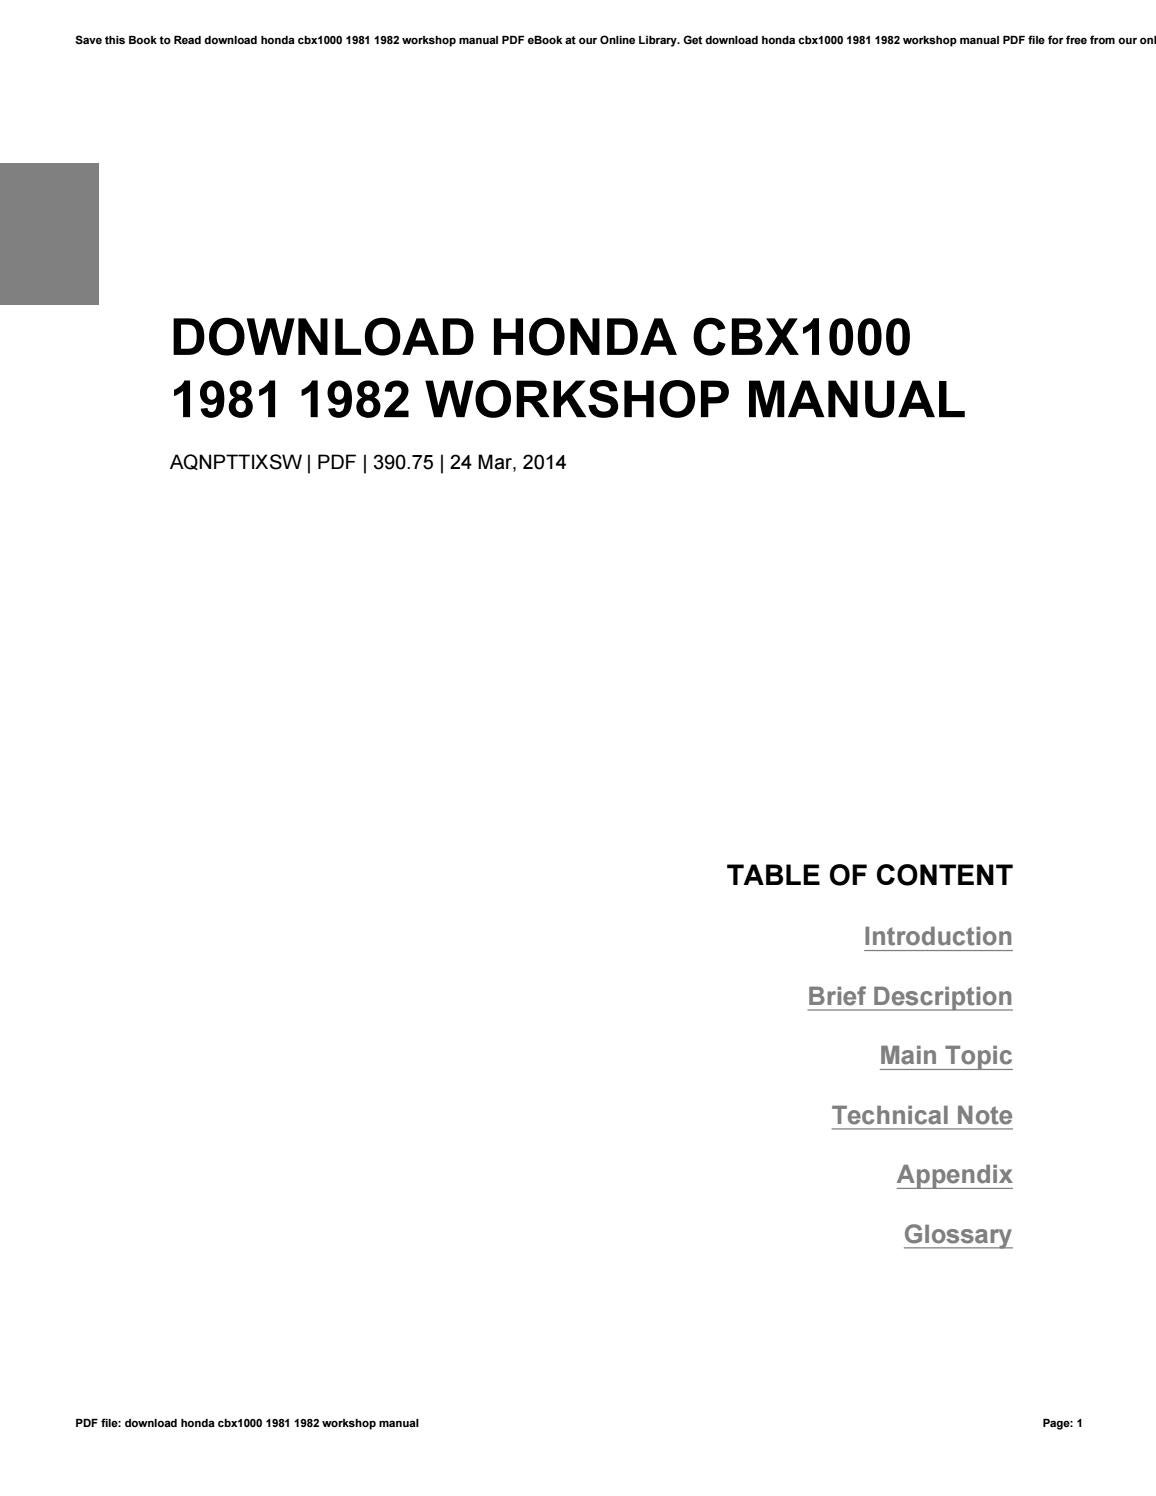 Download honda cbx1000 1981 1982 workshop manual by